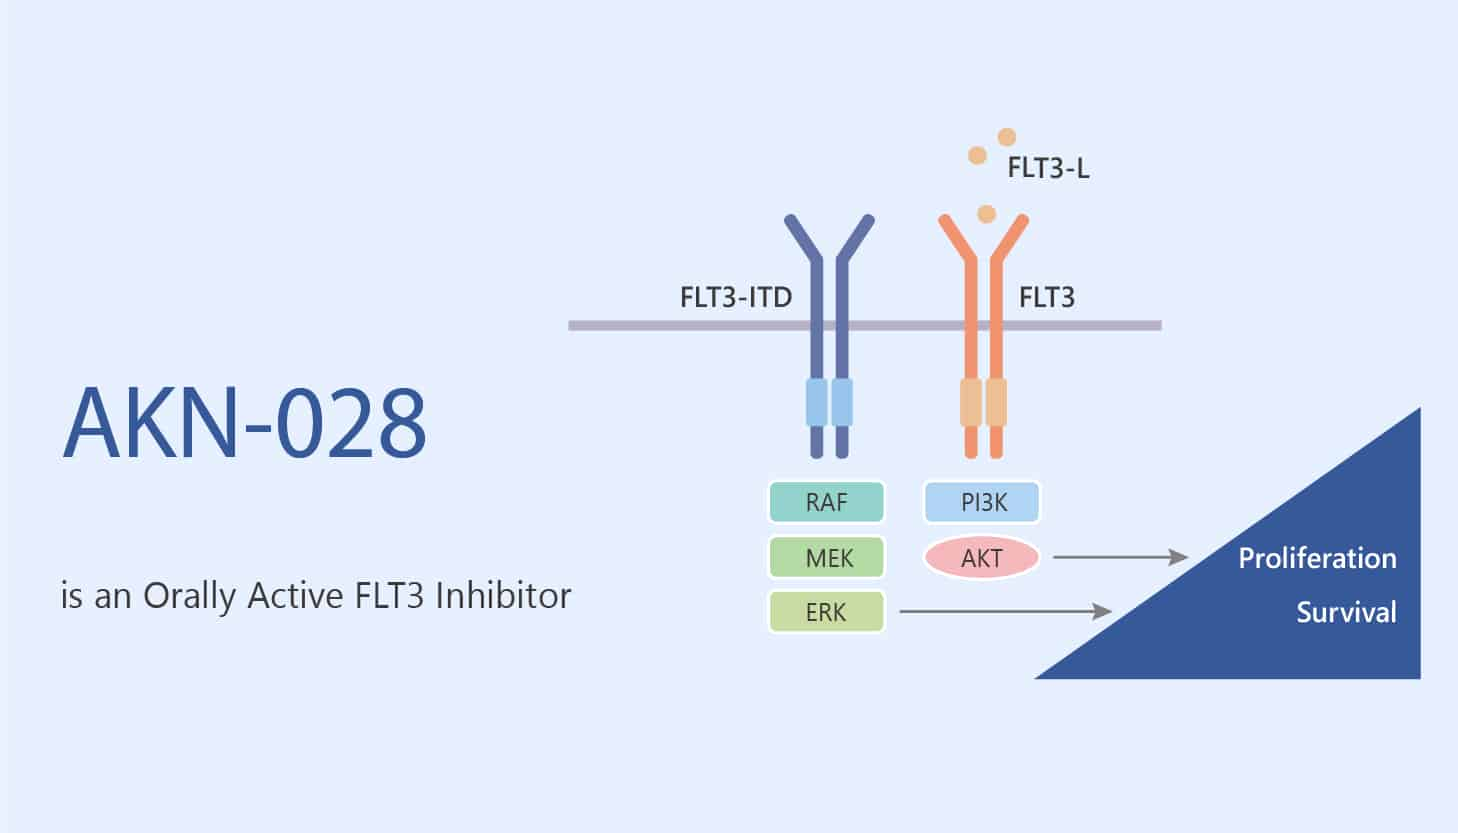 AKN 028 is an Orally Active FLT3 Inhibitor 2020 05 28 - AKN-028 is an Orally Active FLT3 Inhibitor